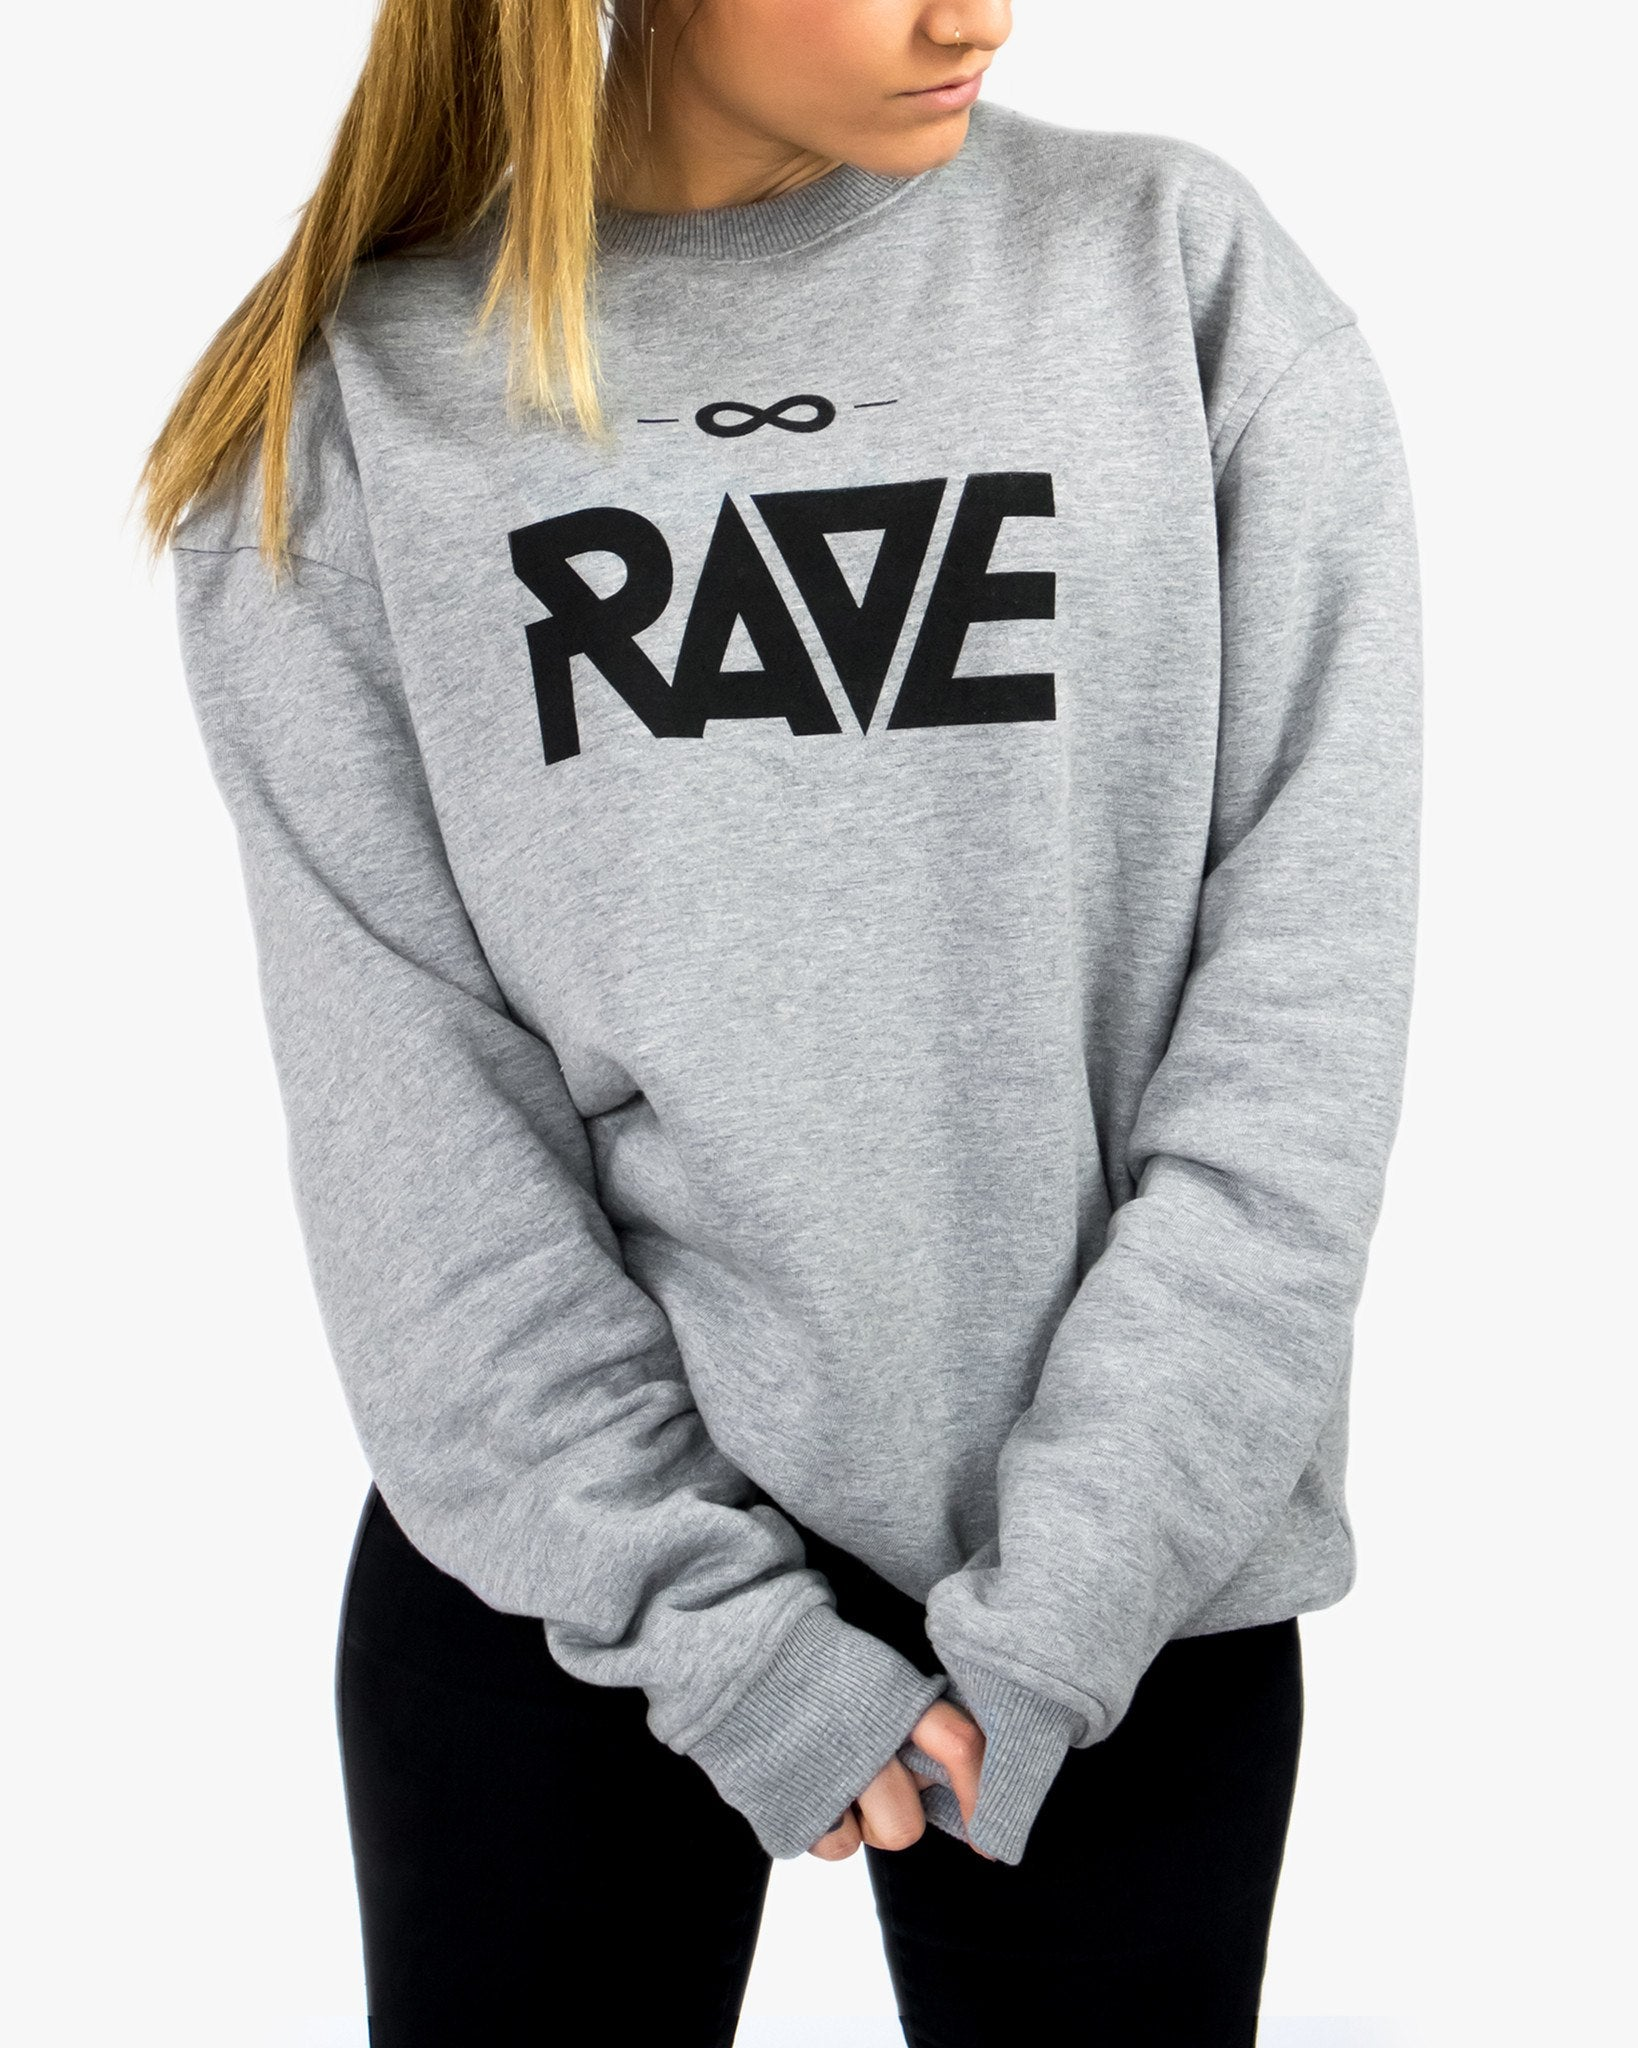 RAVE Crewneck from RAVE Clothing